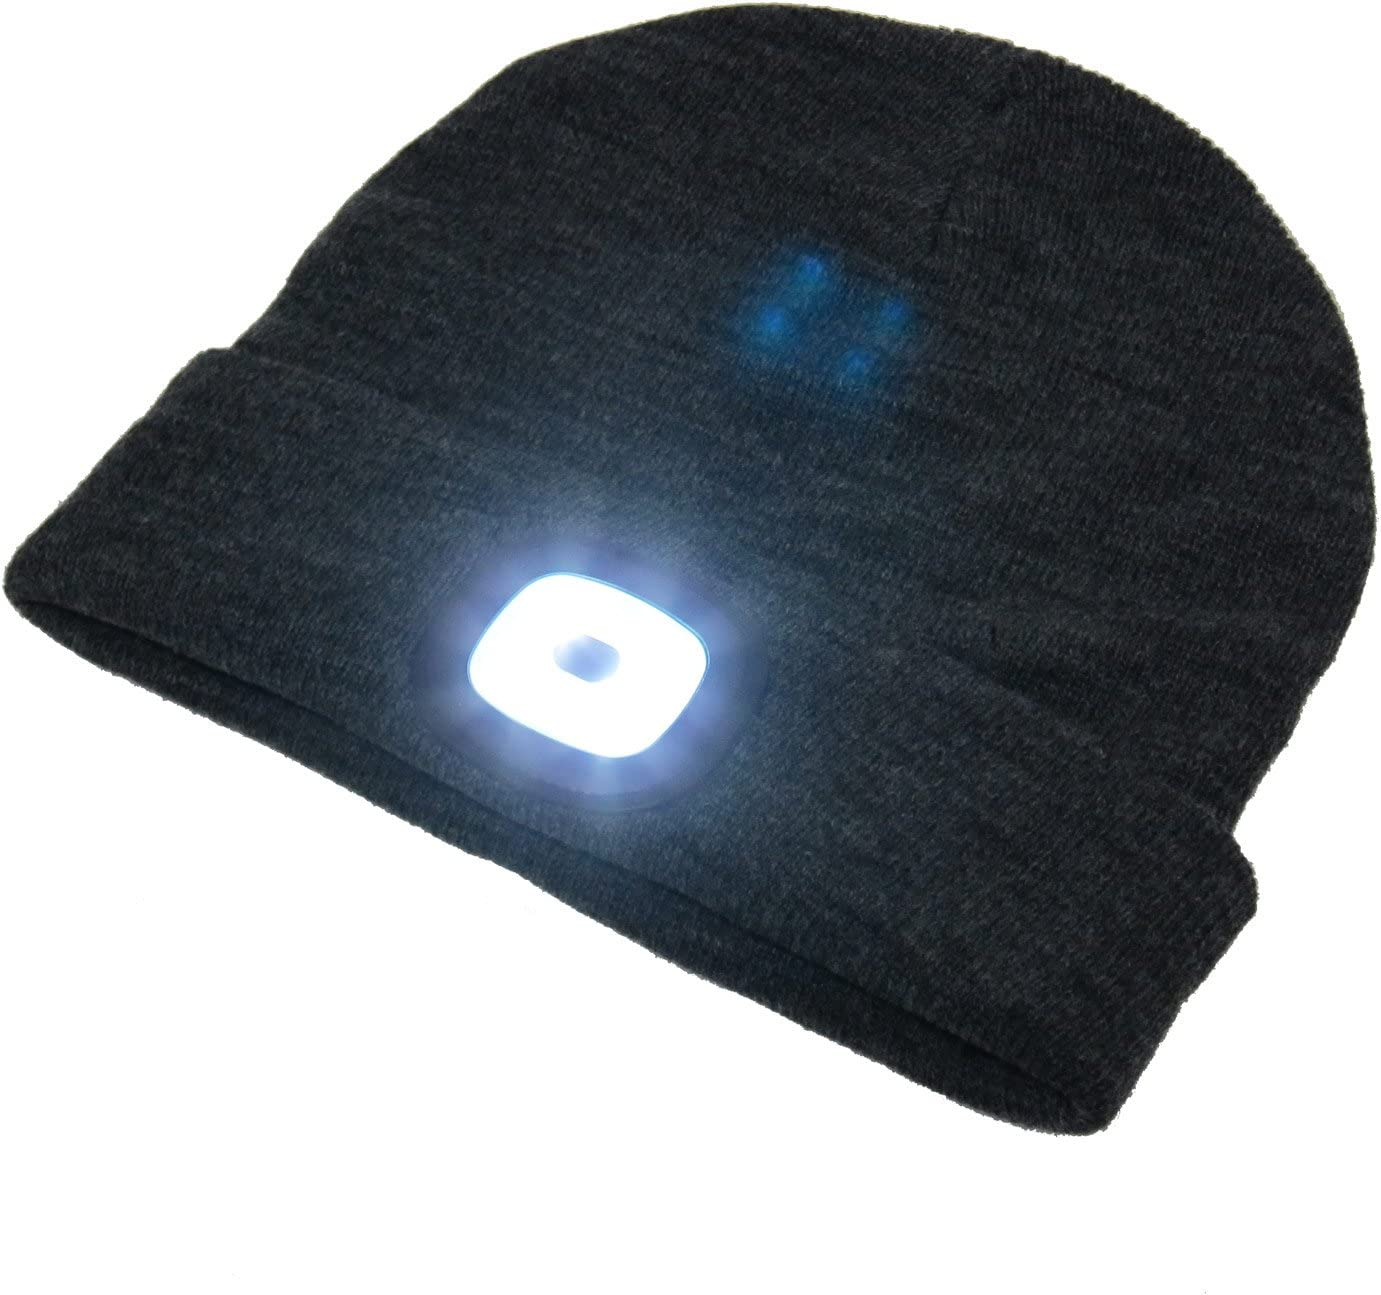 BEAMie Hat with Built-in Rechargeable LED Head Lights, Great for Walking at Night, Dog Walking, Running, Auto-Mechanics, Bikers, Camping